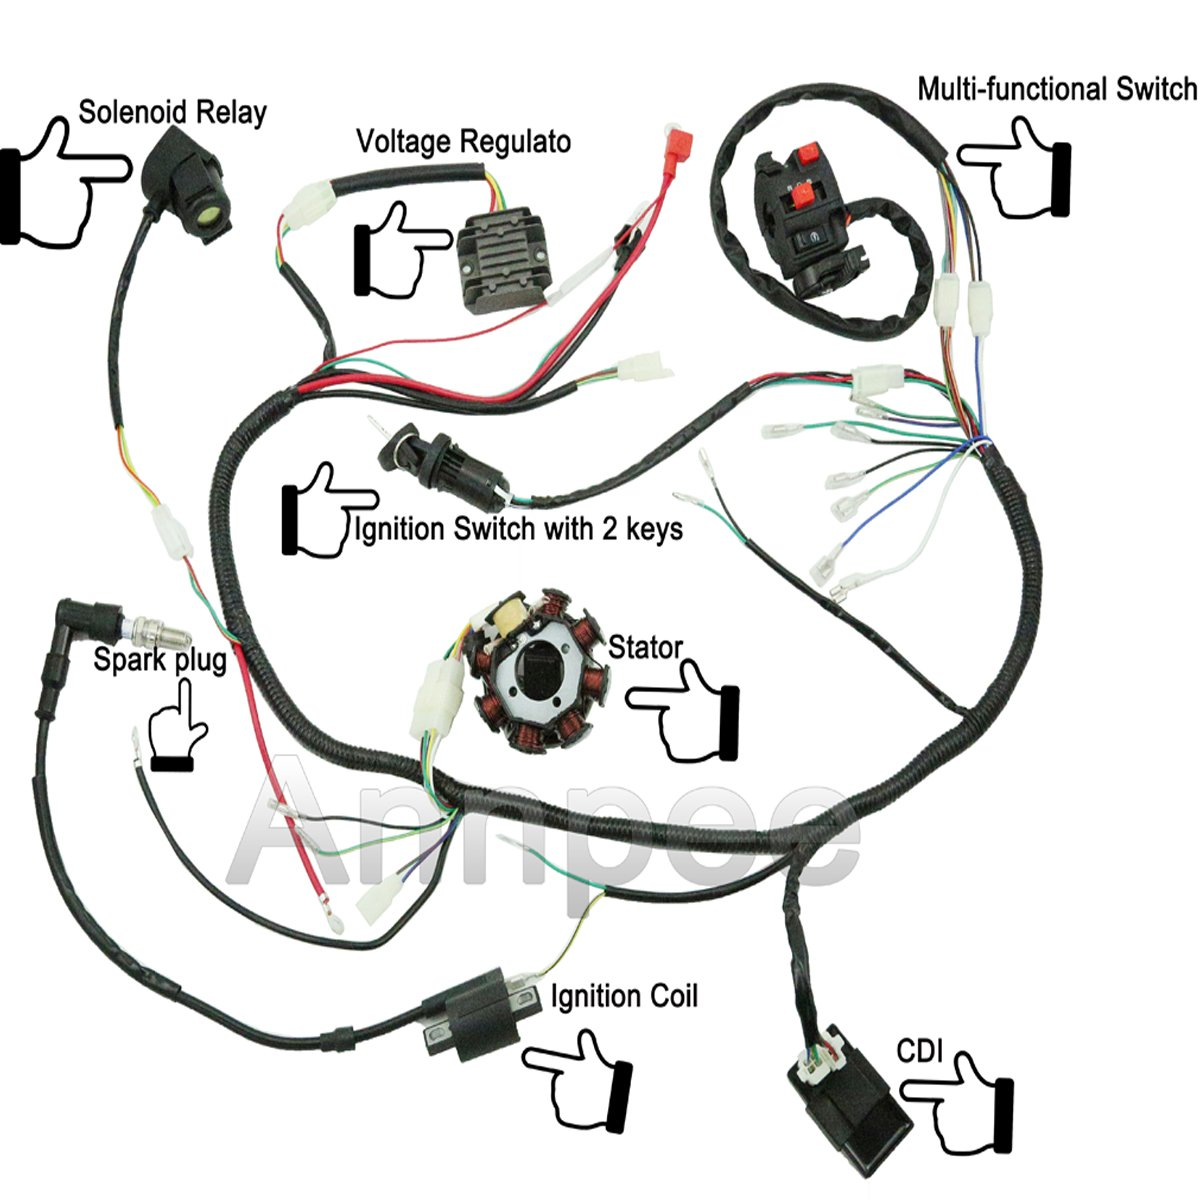 mack engine wiring harness mack engine wiring harness conversion | wiring diagram mack engine wiring harness conversion #4